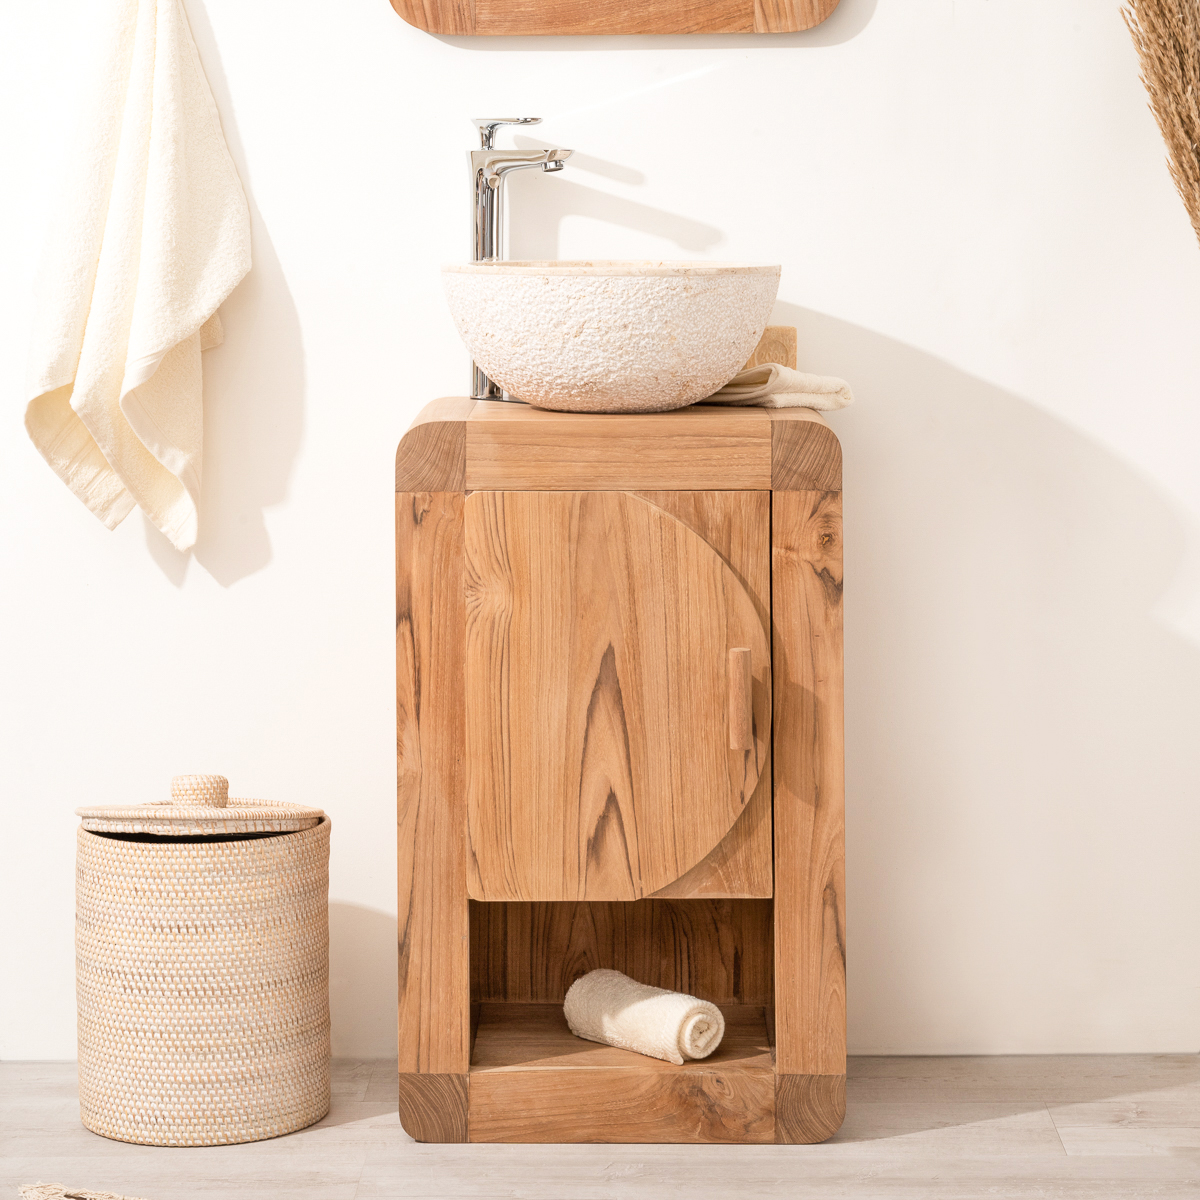 Meuble sous vasque simple vasque en bois teck massif contemporain rectangle naturel l for Petit meuble salle de bain